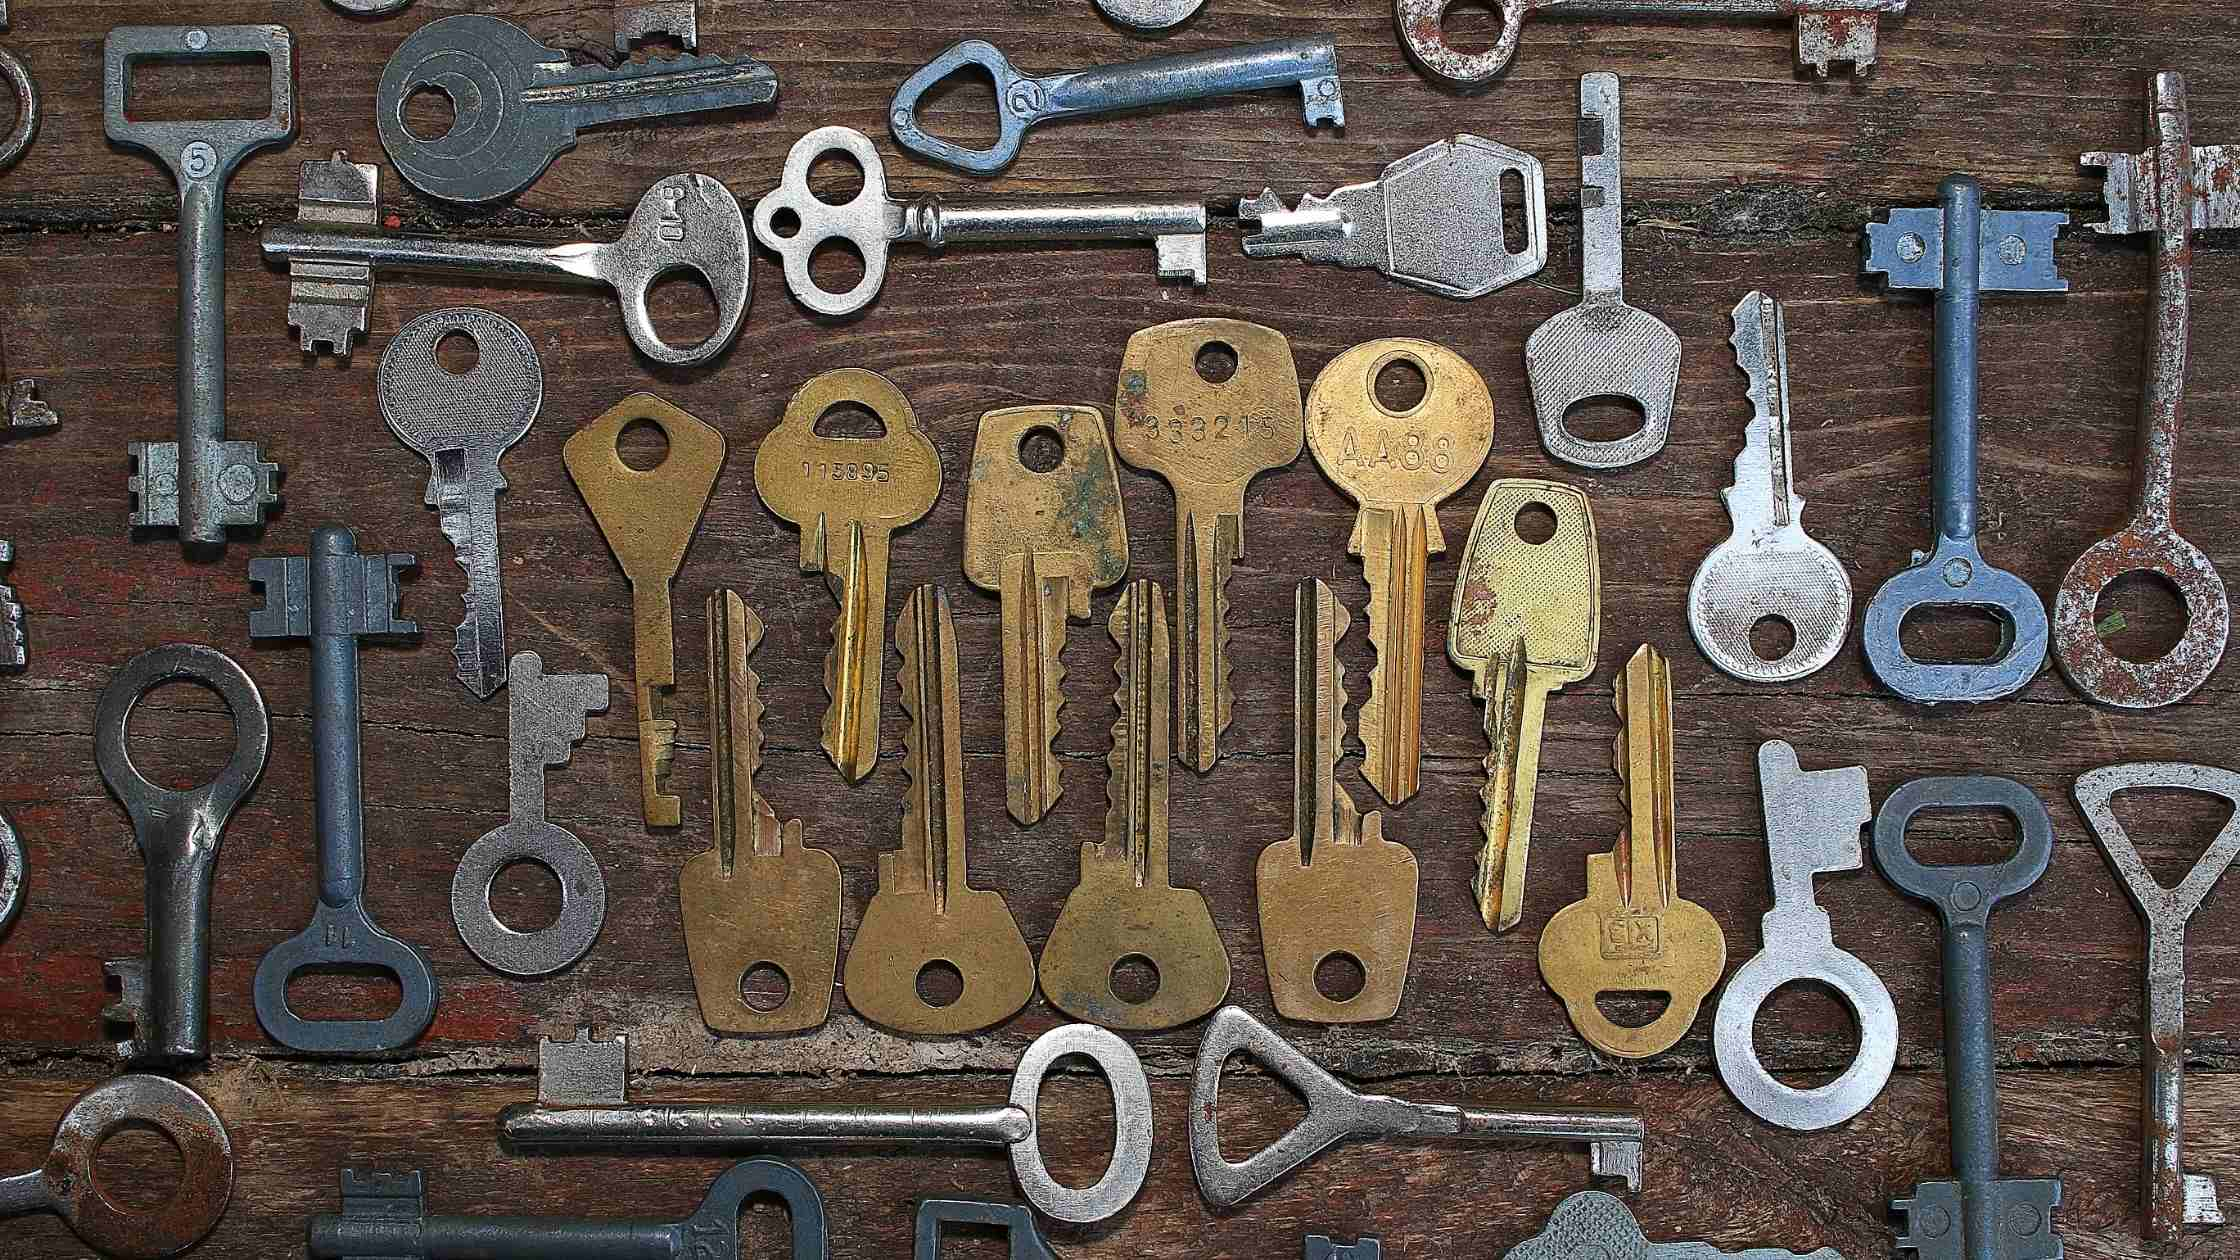 API security concept; keys of varying shapes and sizes on a wooden board